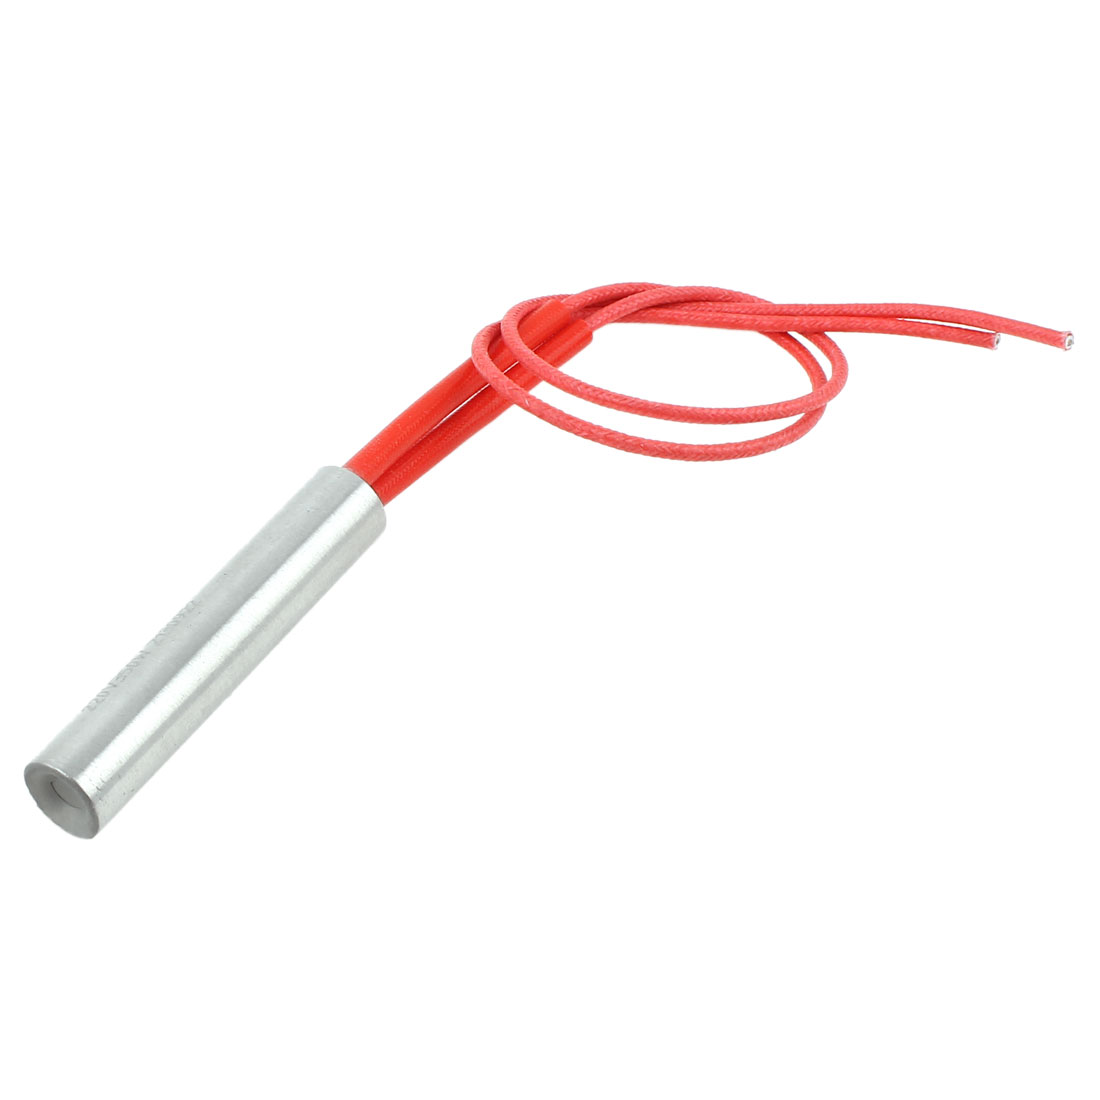 AC 220V 350W 12 x 60mm Stainless Steel Cartridge Heater Silver Tone Red